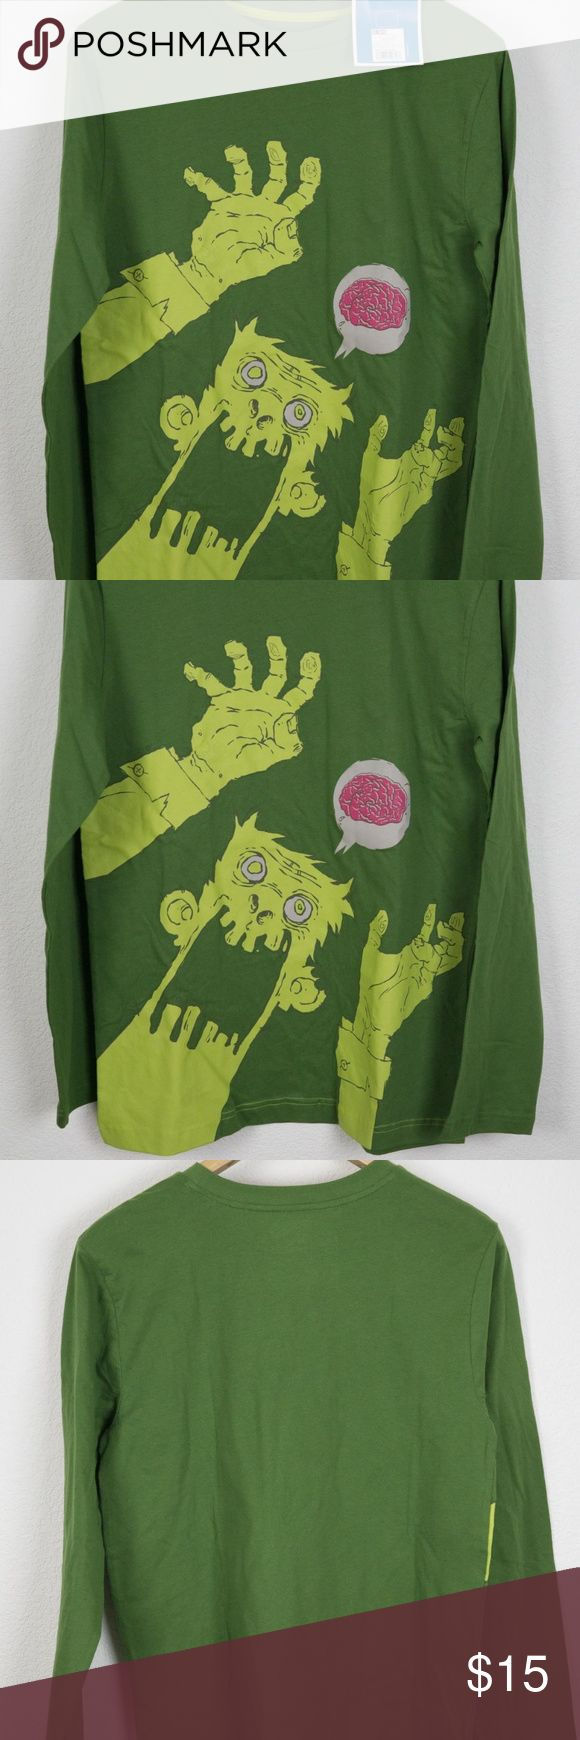 Zombie Brains TShirt Kids XL Long Sleeve Circo New with tags  Brand Circo  Material 100% Cotton  Color Green    Measured lying flat in inches  Tagged Size XL See below for actual measurements  Chest 38 underarm to underarm - doubled  Length 28 top of shoulder to bottom hem  Shoulders 17 shoulder seam to seam   Sleeve Length 25 shoulder seam to cuff end Circo Shirts & Tops Tees - Long Sleeve